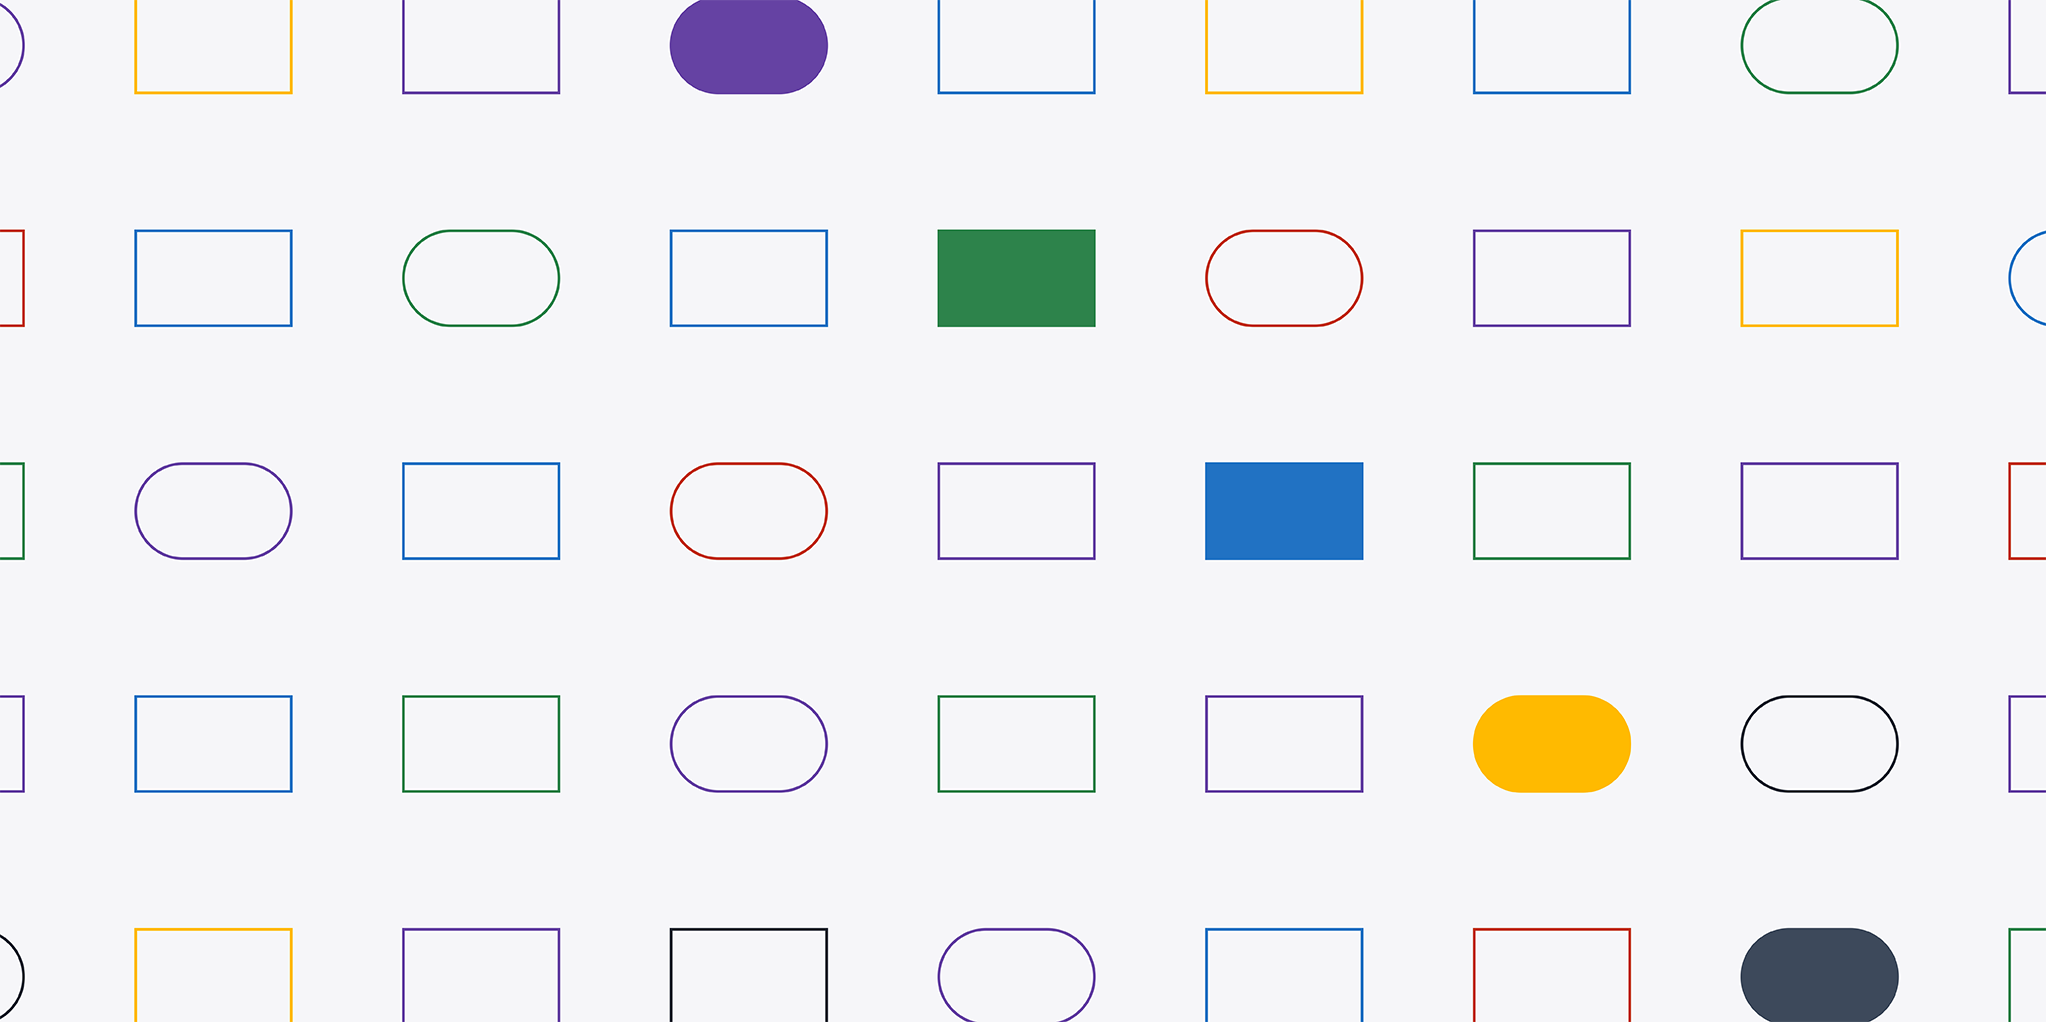 Rows of colorfully outlined shapes with cascading solid shapes from the top middle to the bottom right.